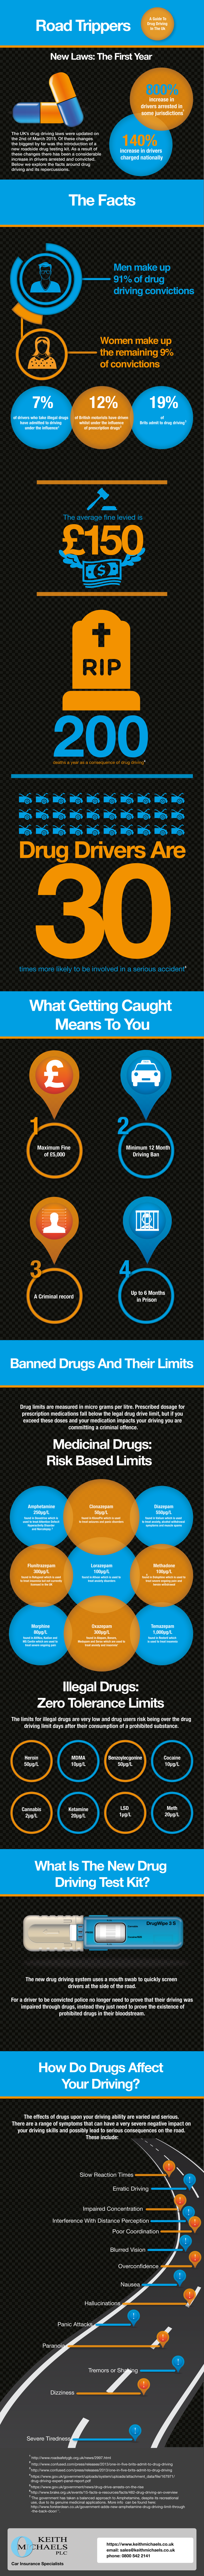 UK Drug Driving: The Laws and The Facts